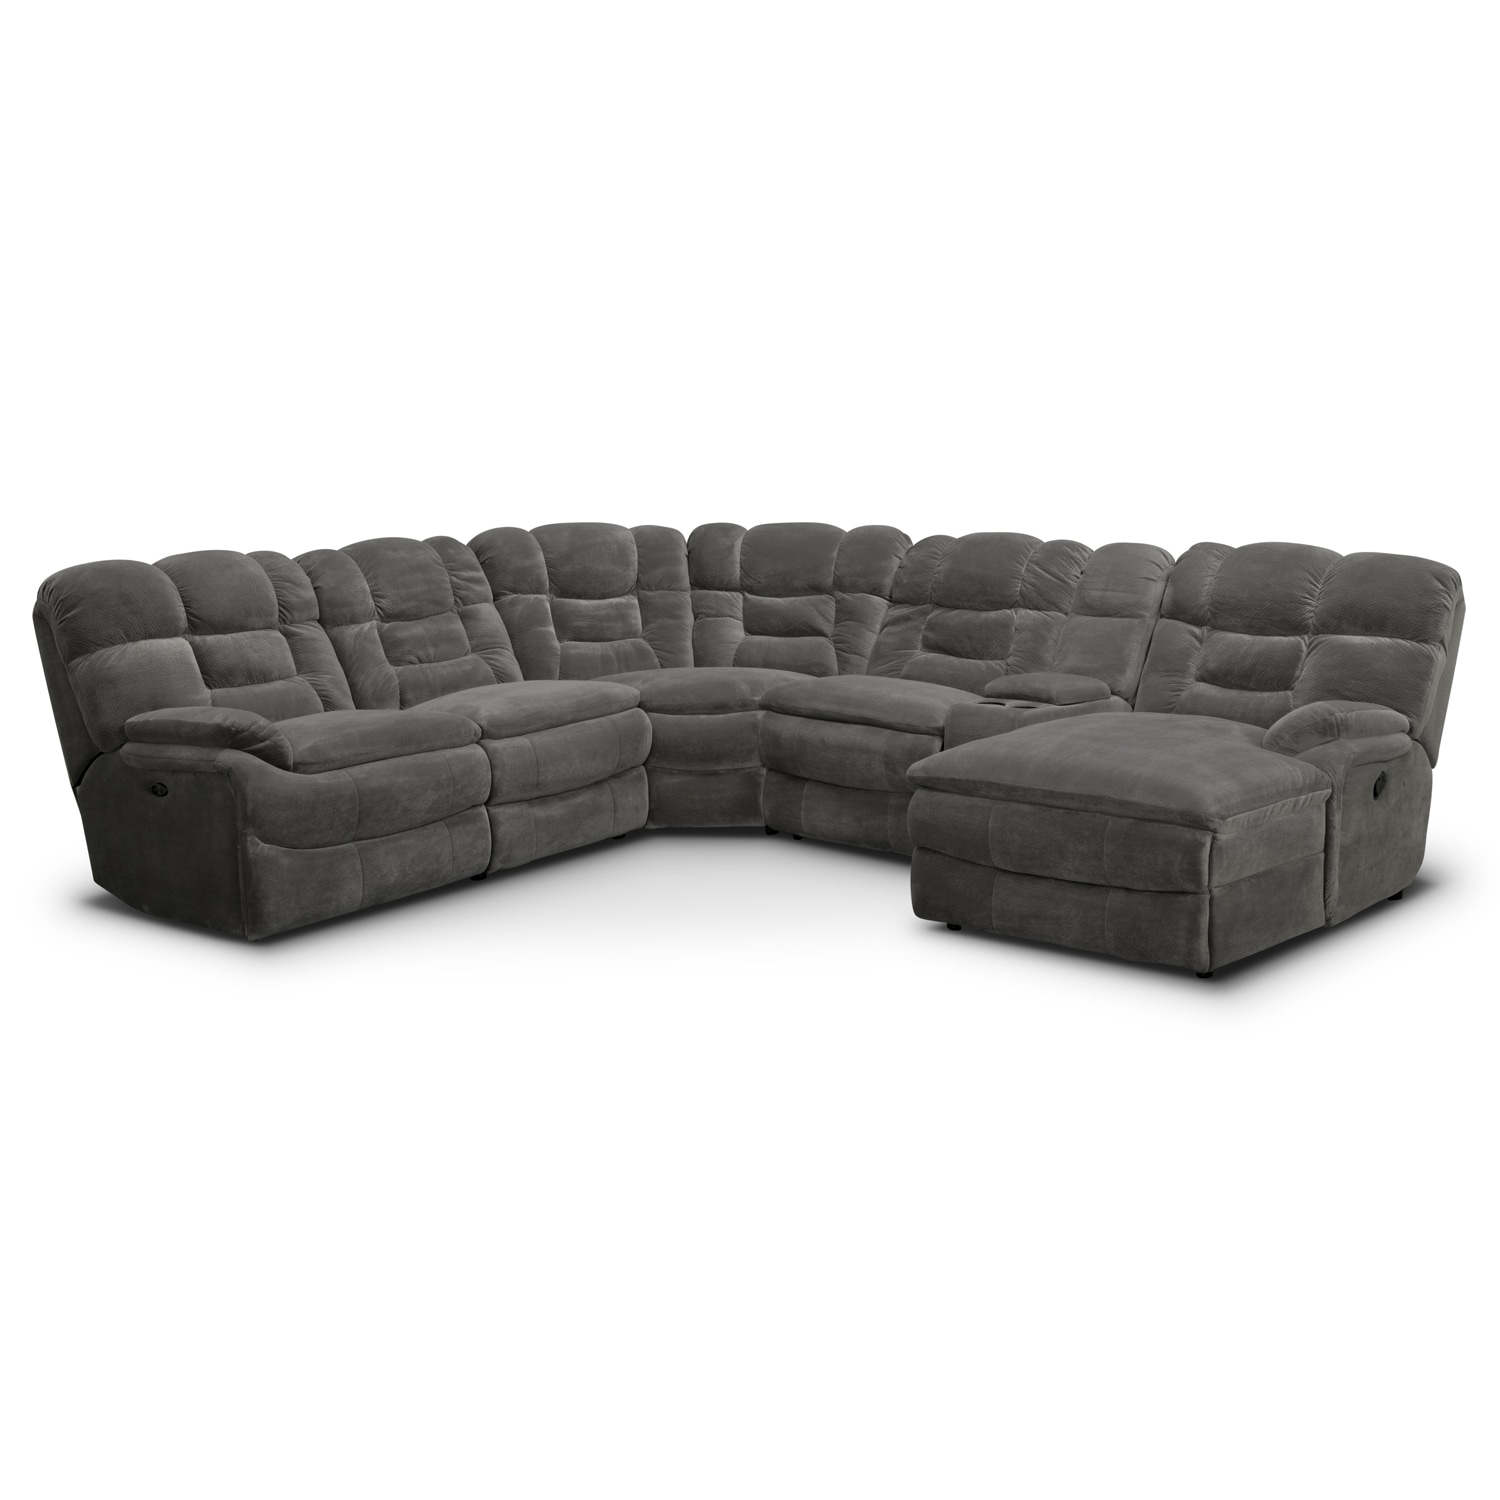 Living room furniture big softie ii 6 pc power reclining for 6 pc sectional living room